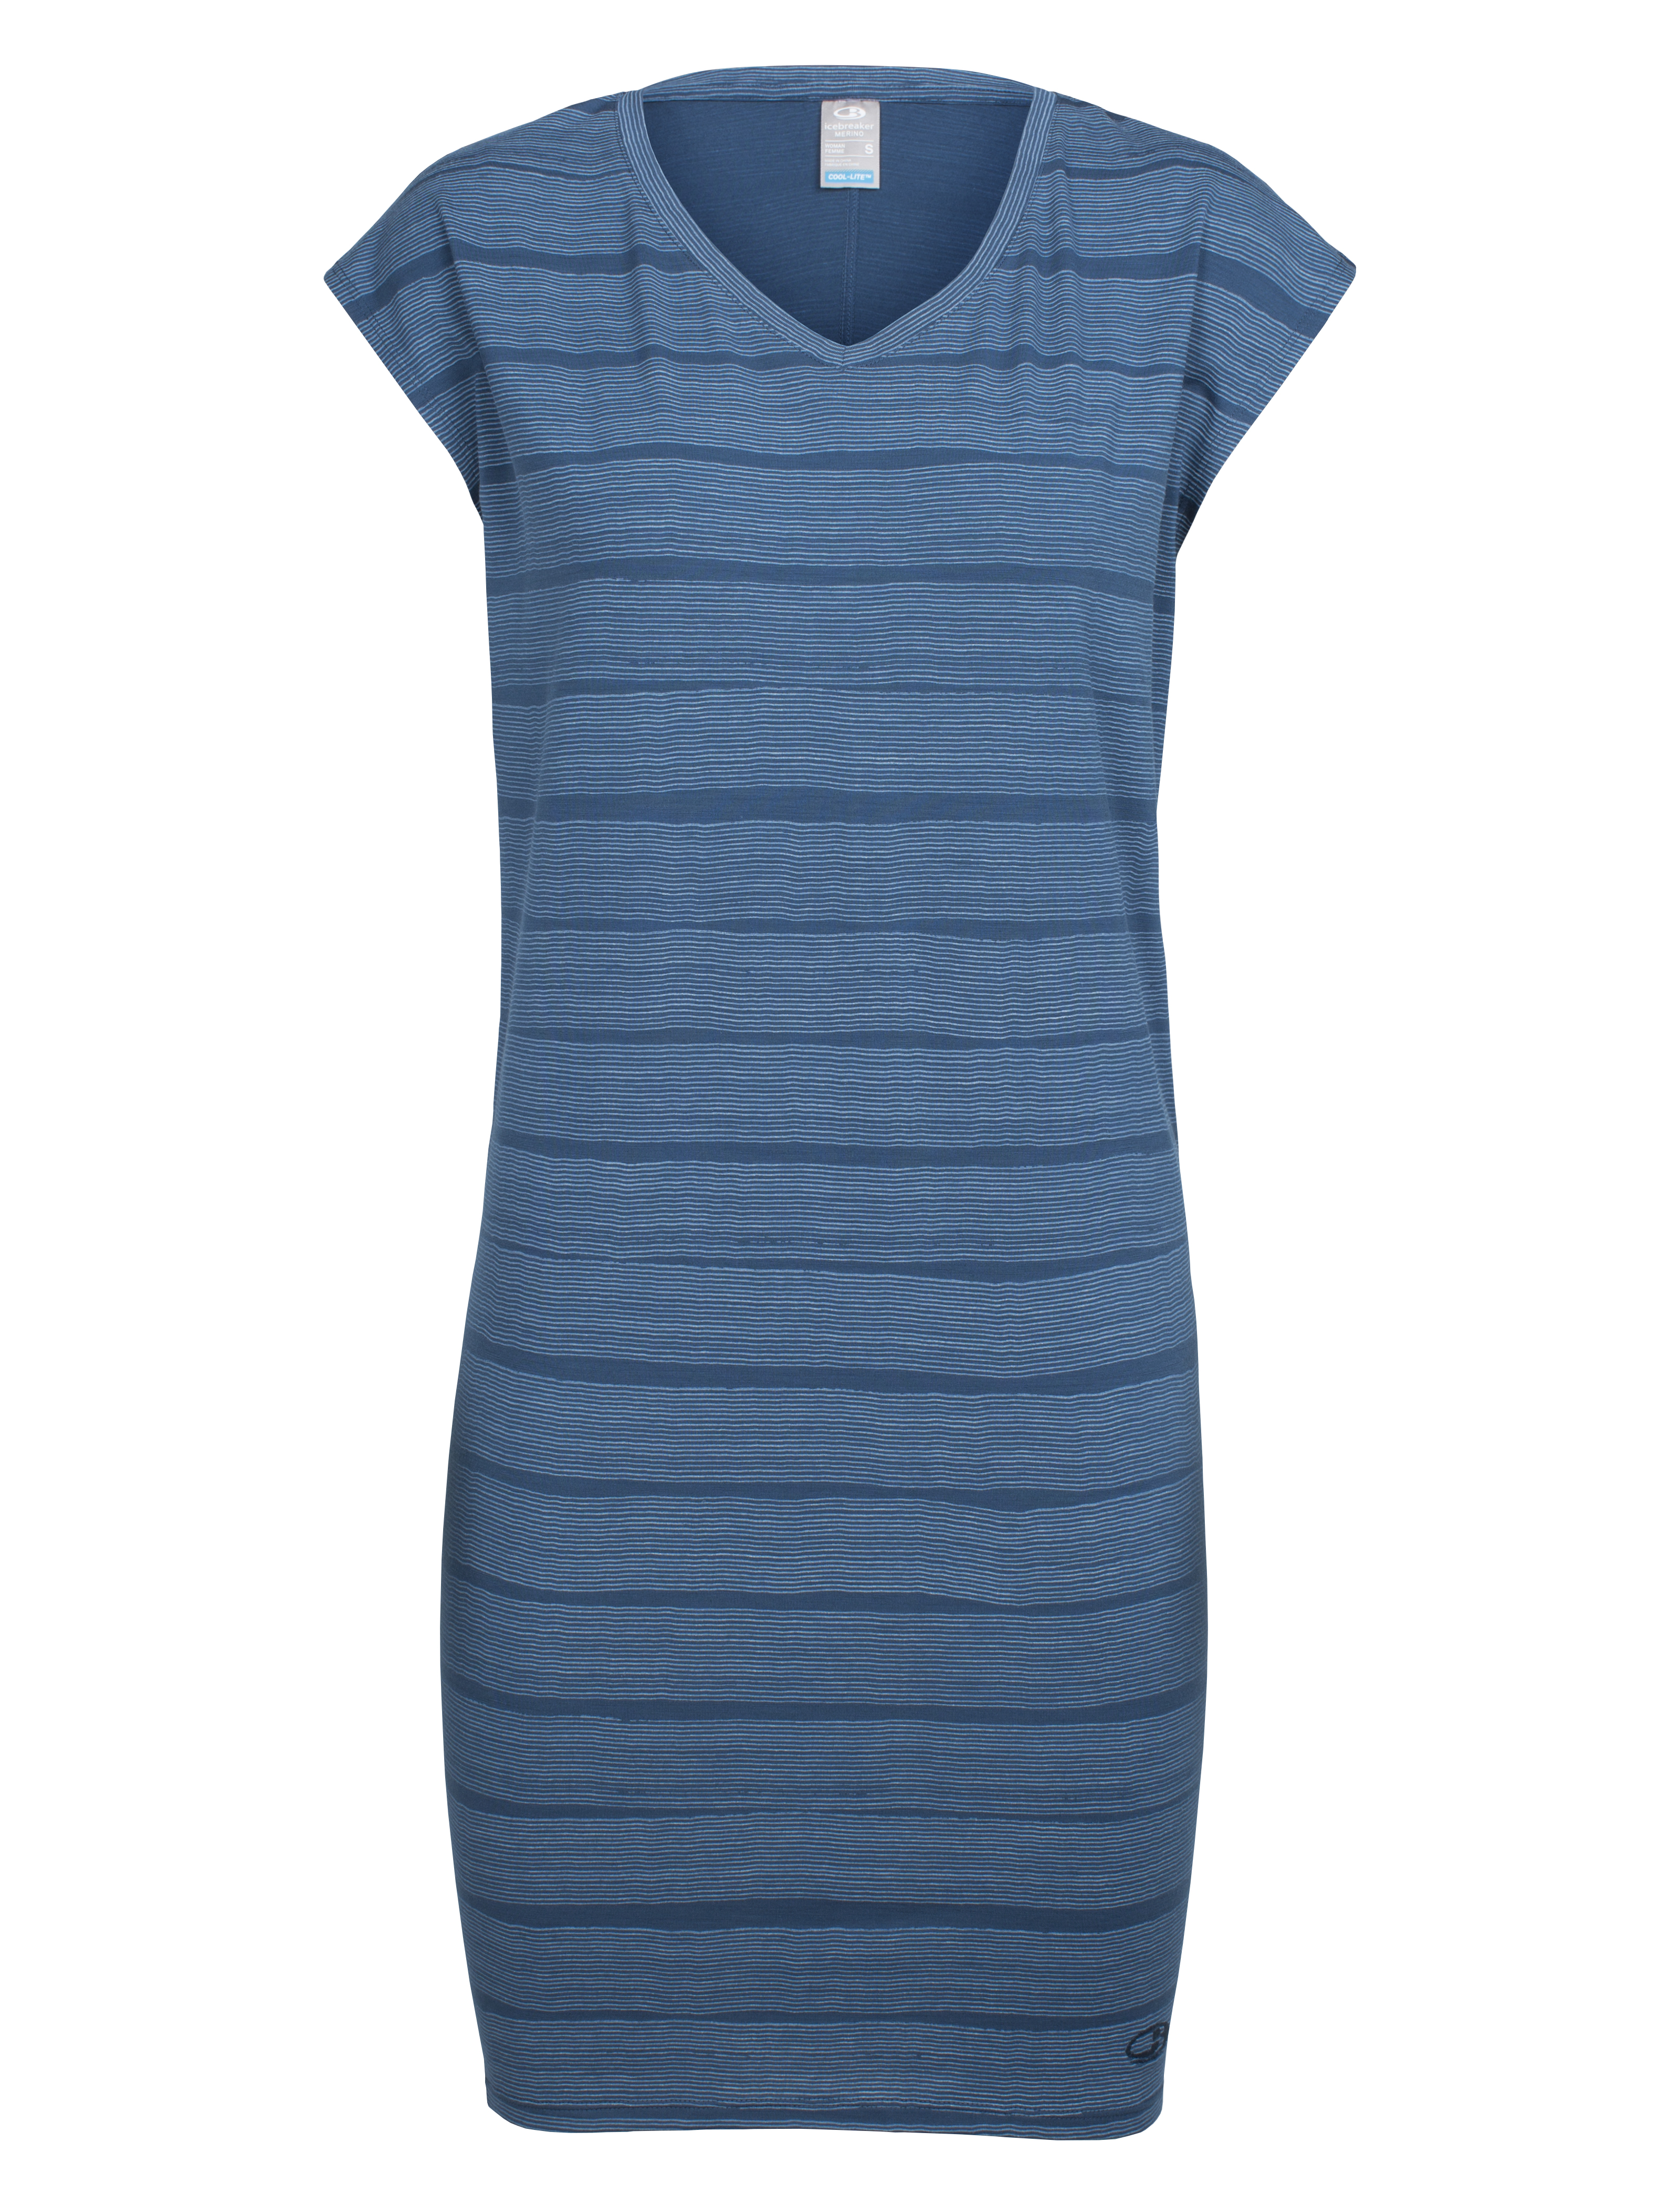 SS18-WOMEN-YANNI-TEE-DRESS-COMBED-LINES--104267401_1